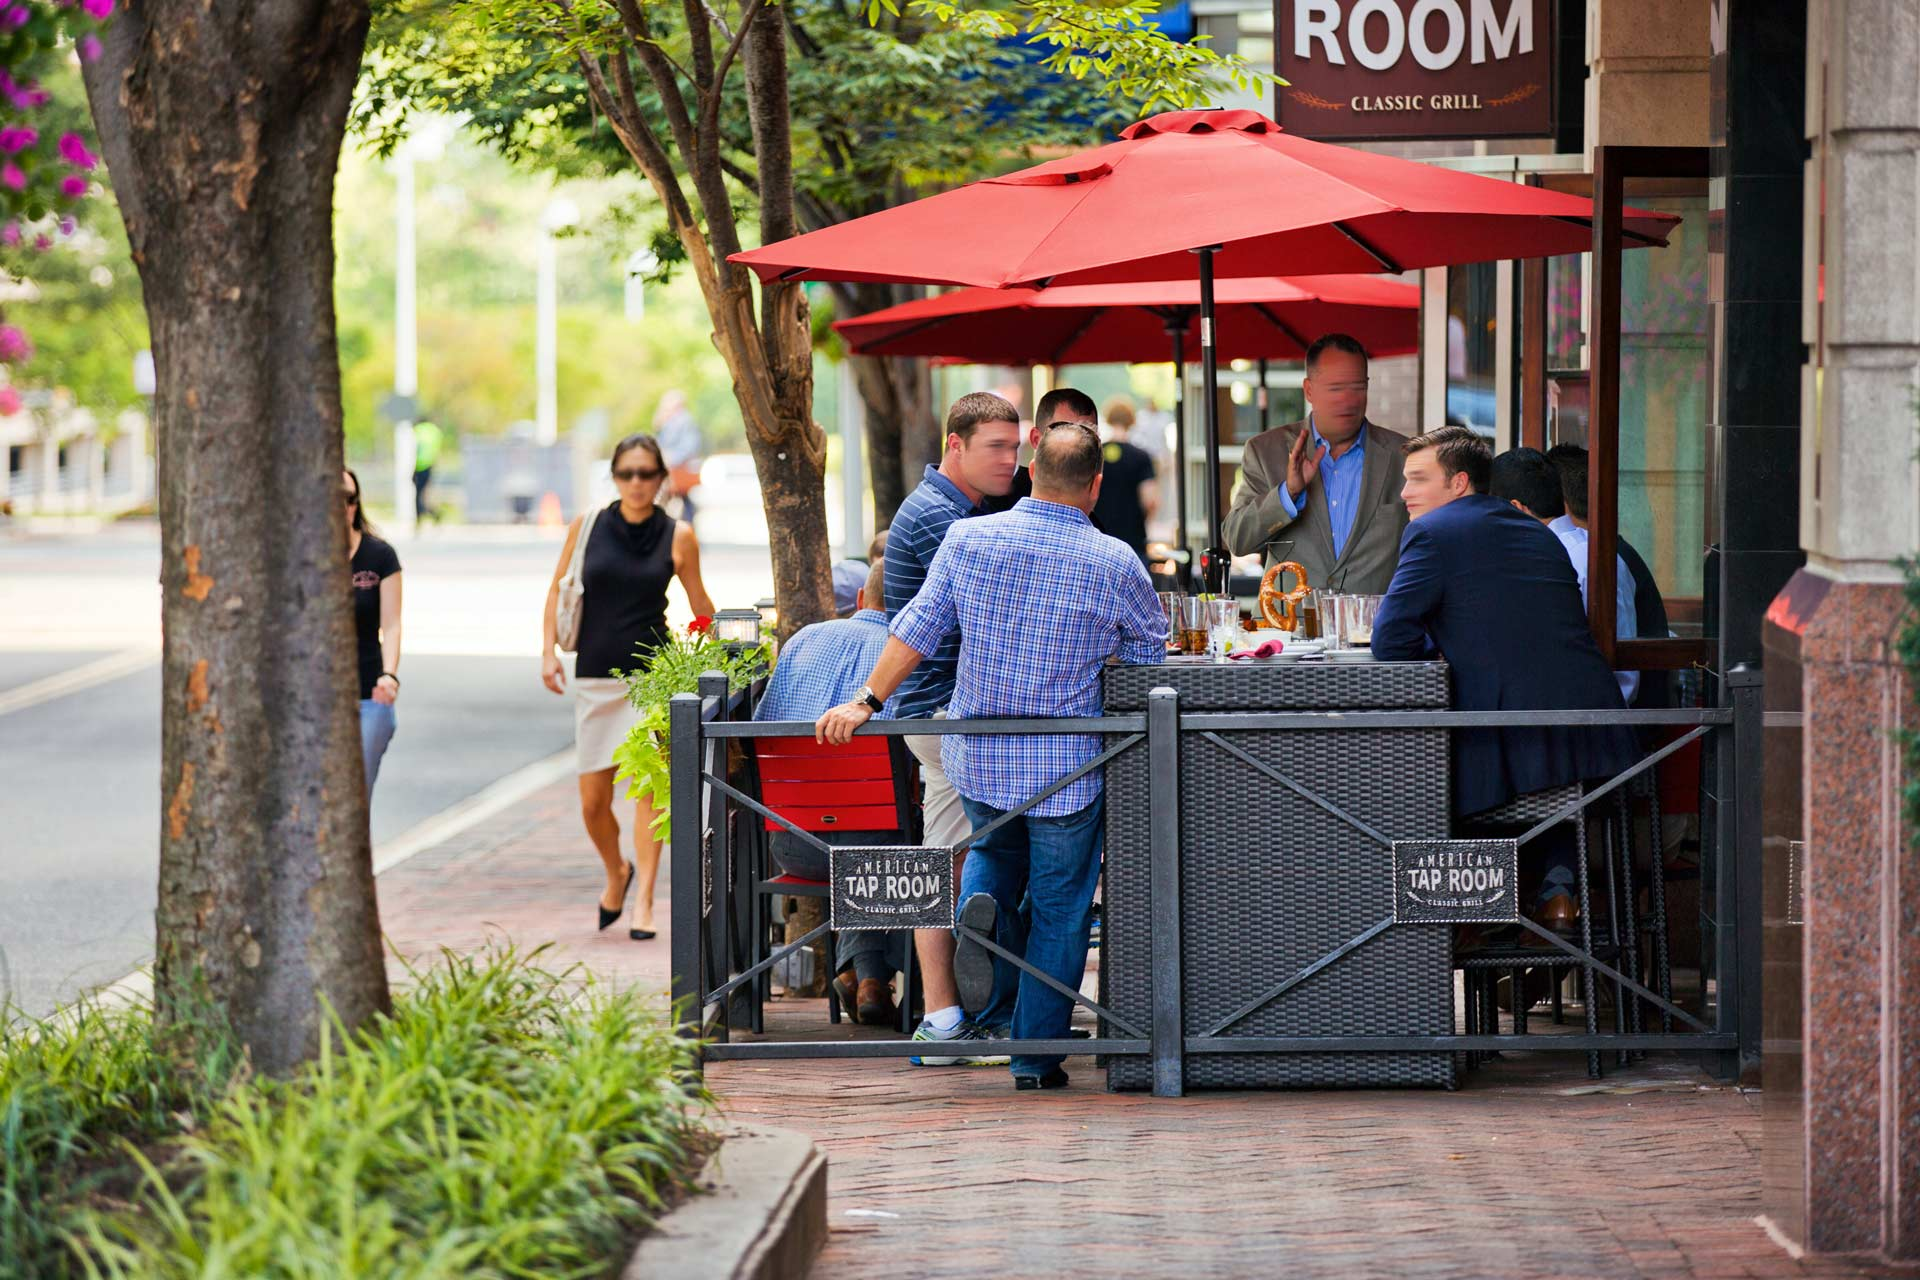 Outdoor seating at Tap Room restaurant